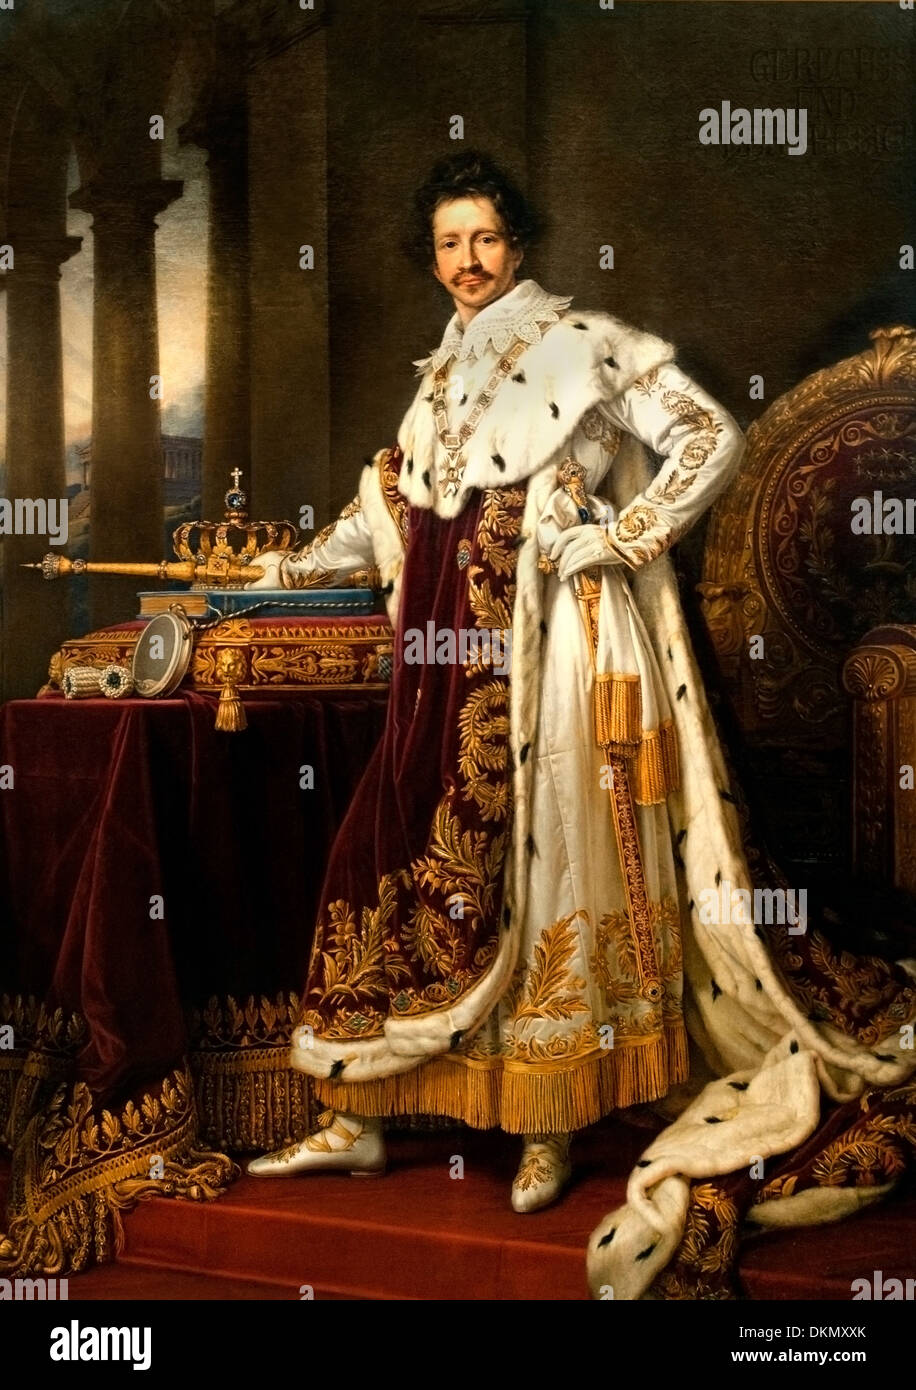 KING LUDWIG I IN CORONATION ROBES (1826) JOSEPH KARL STIELER (1781-1858) German Germany - Stock Image